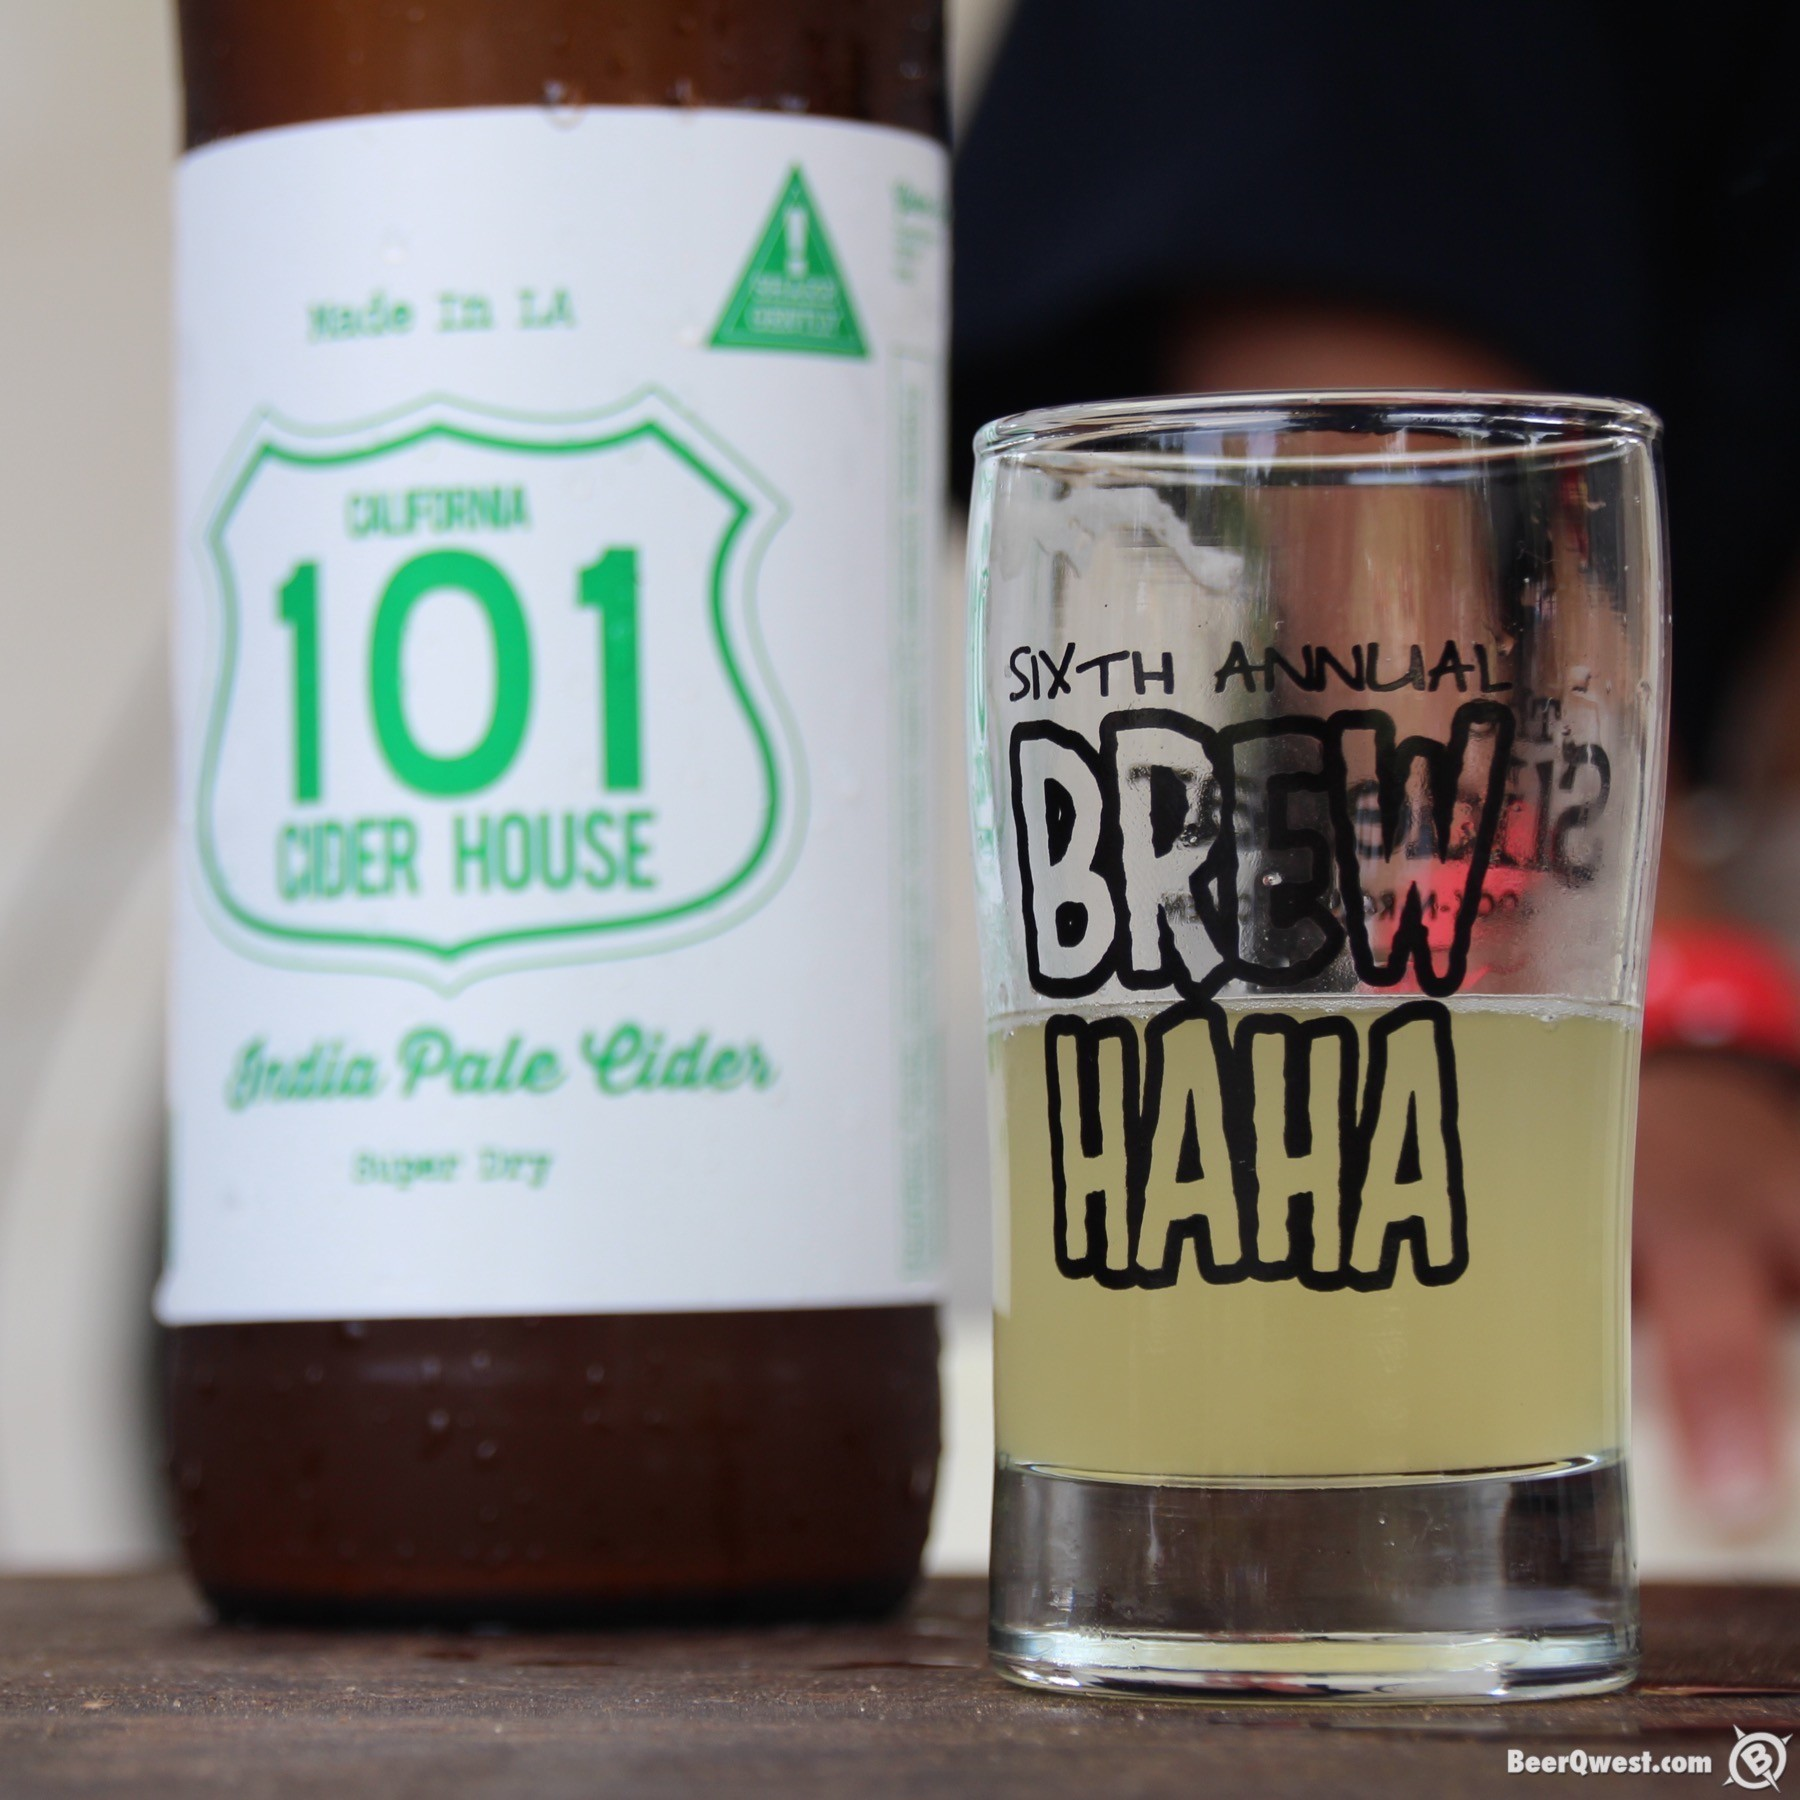 India Pale Cider from 101 Cider House at OC Brew Ha Ha